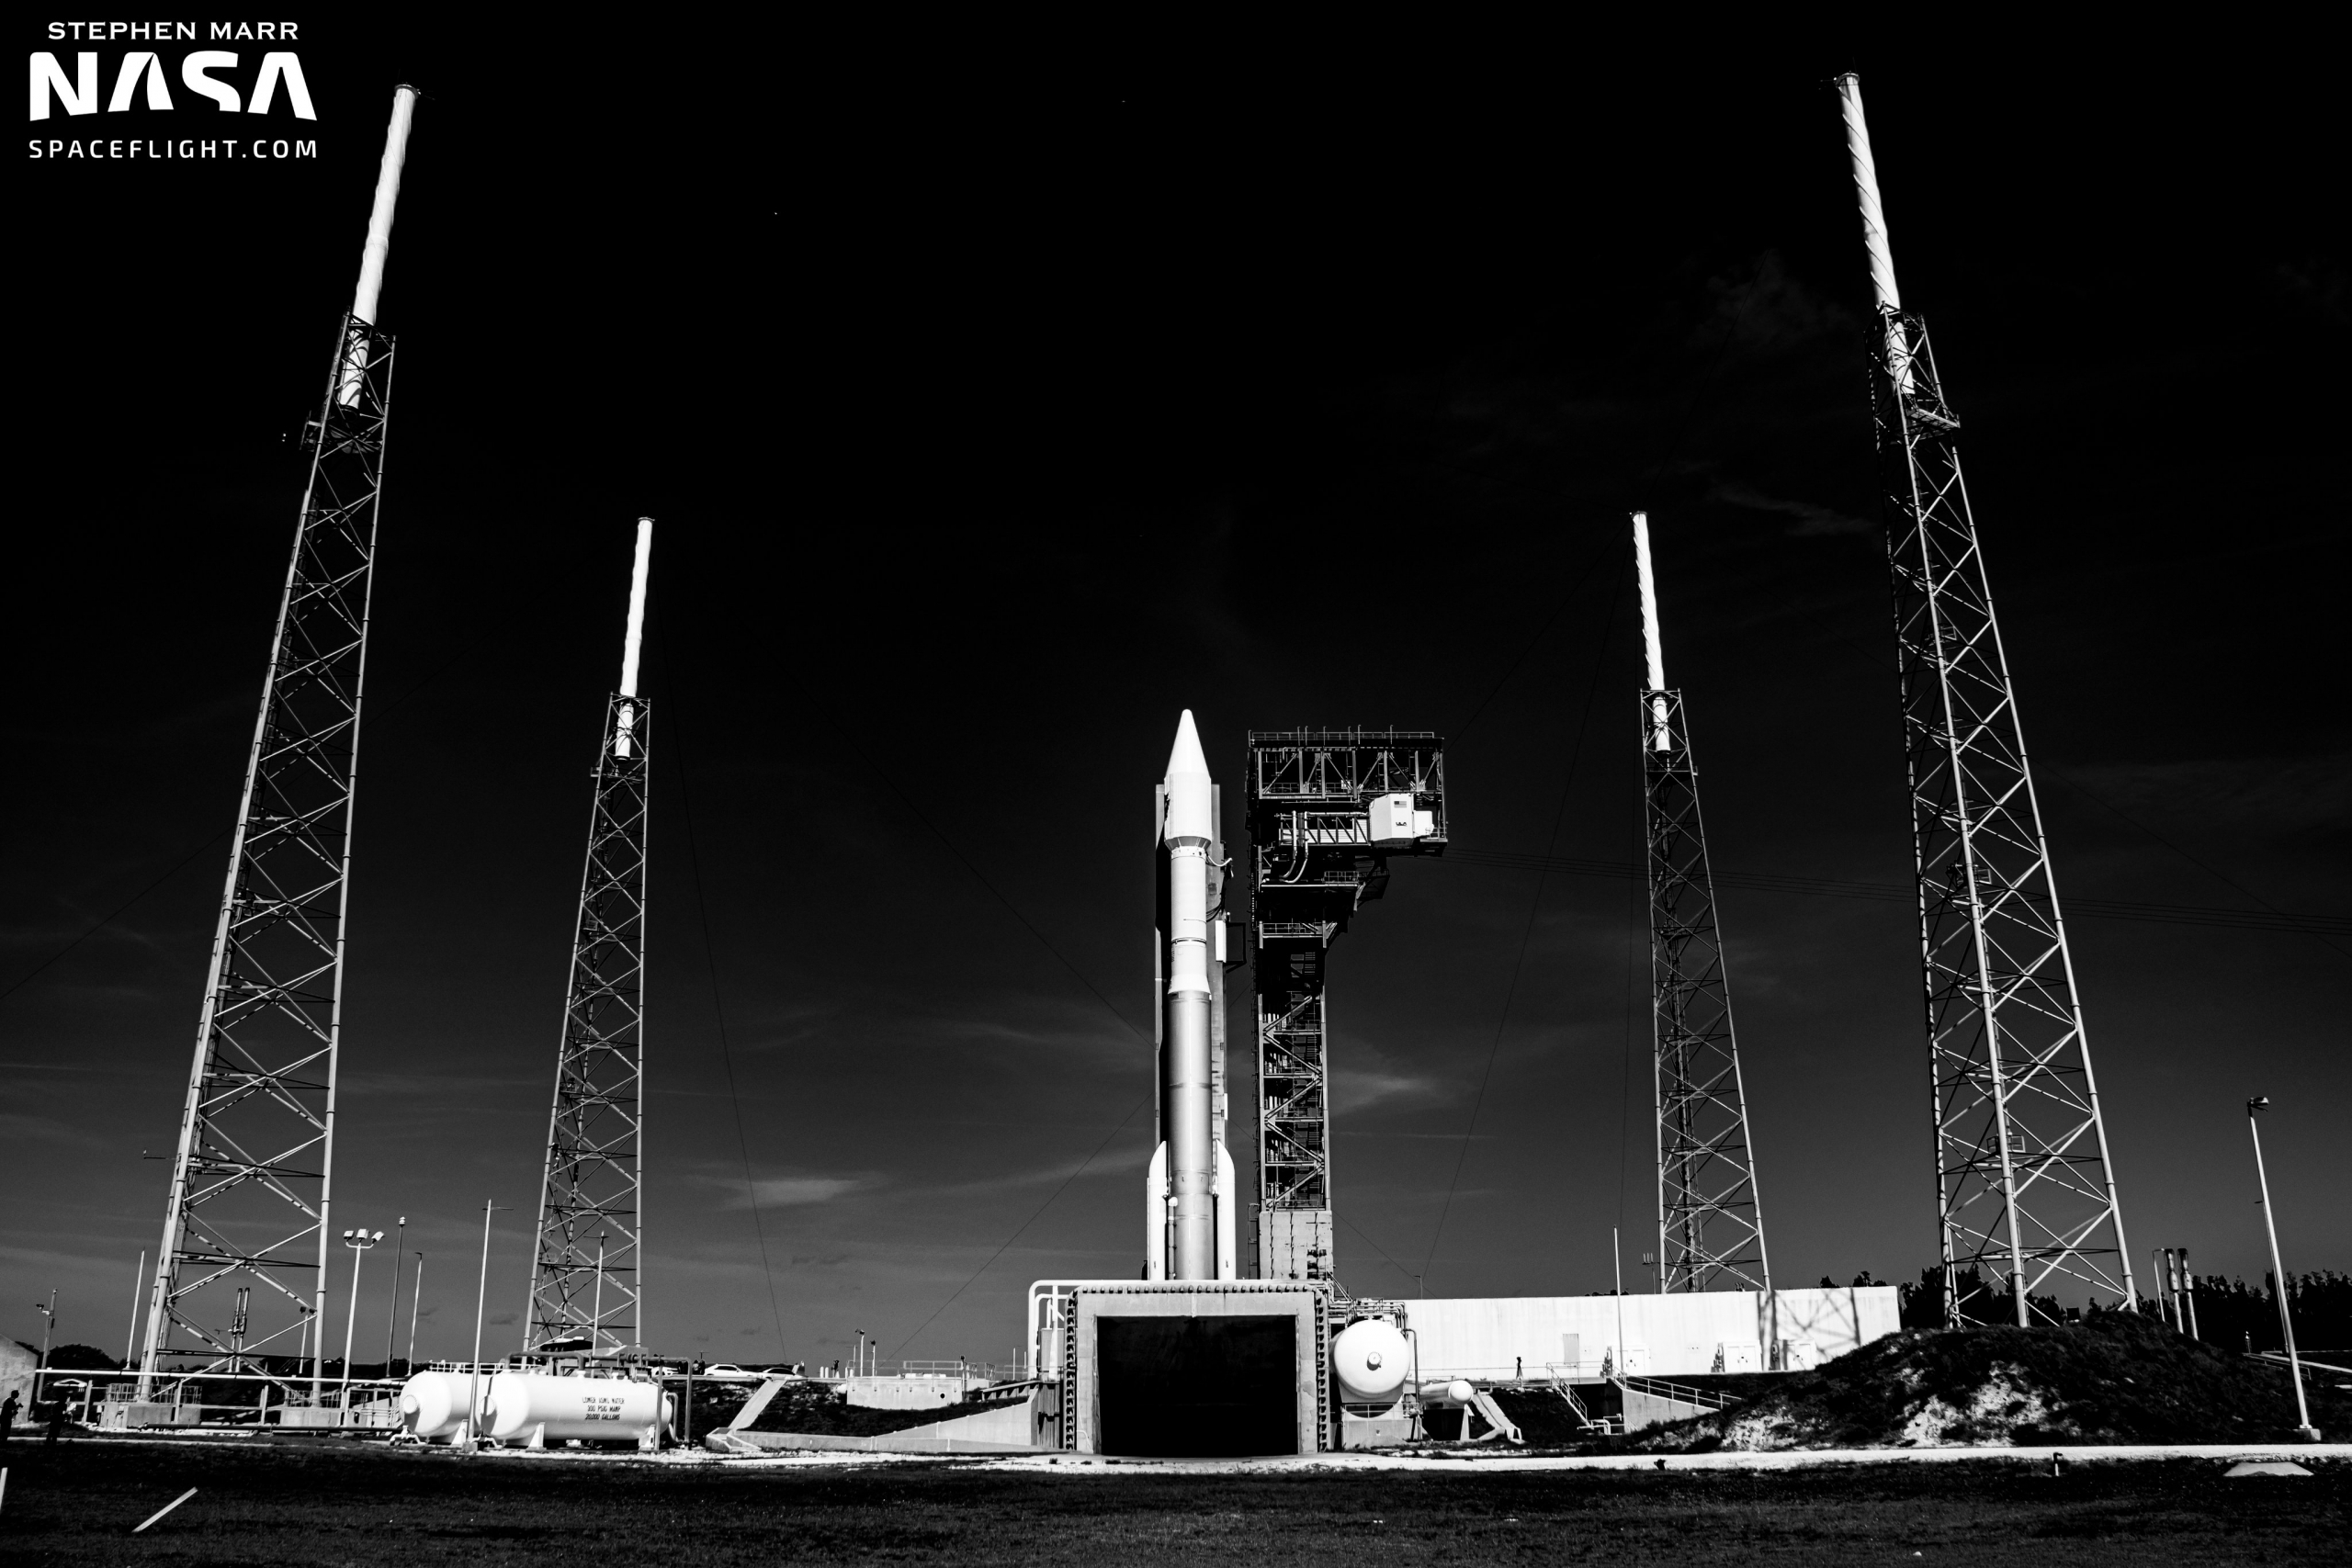 ULA Space Force missile tracking satellite, first Atlas V launch of 2021 – Take Two